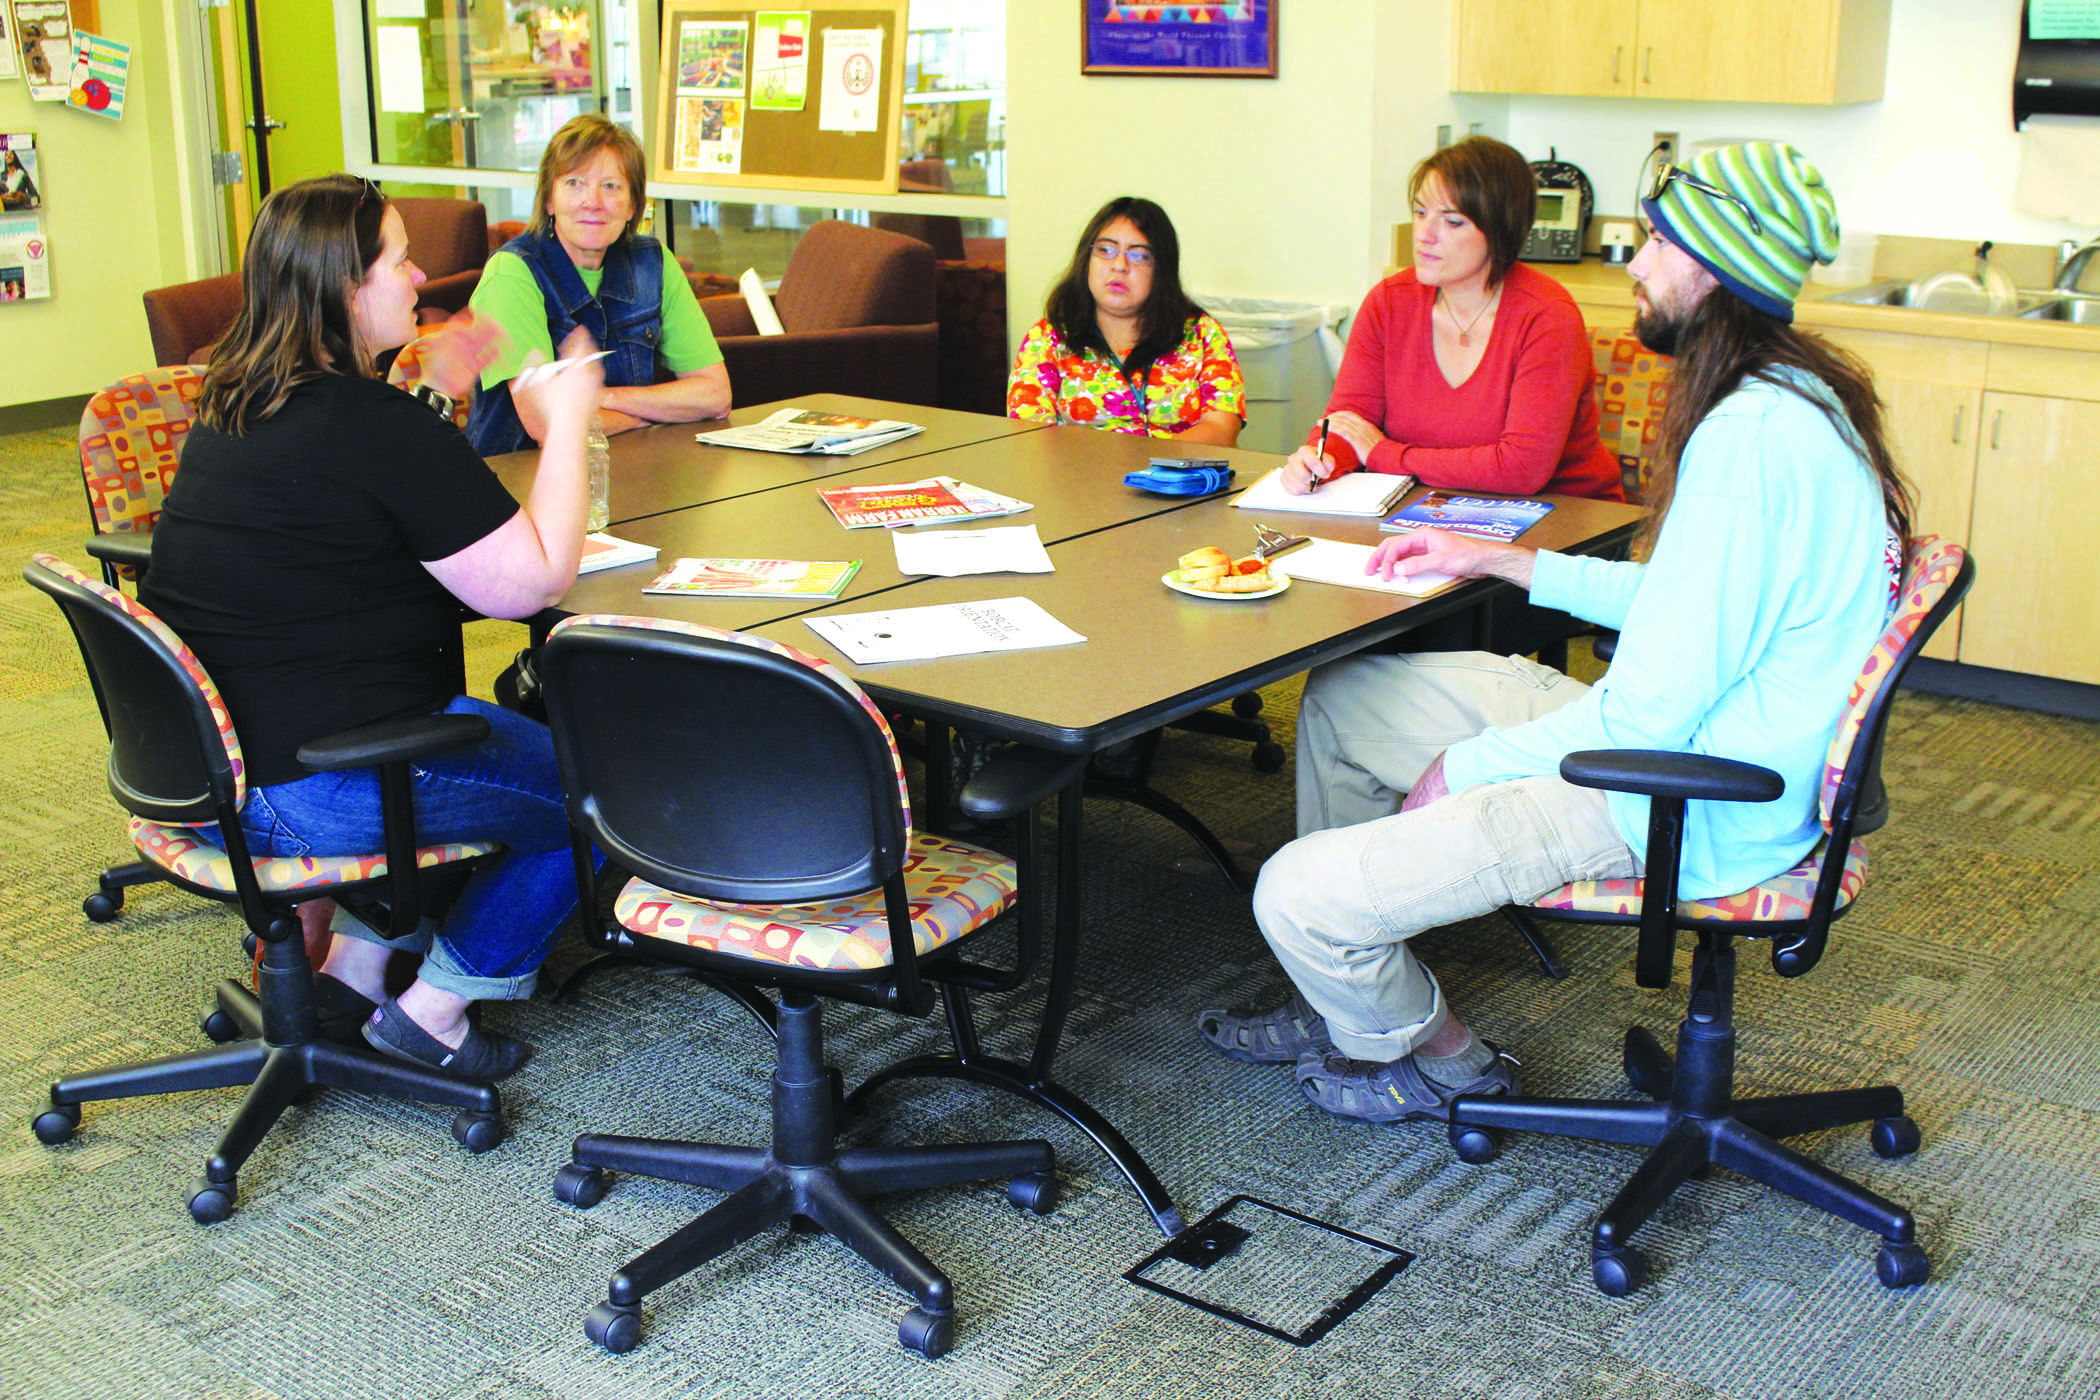 On Friday, OCt. 2, the COCC Garden Club members meet to discuss the upcoming year, their hopes to attract more students and the ways in which they are going to impact the community.